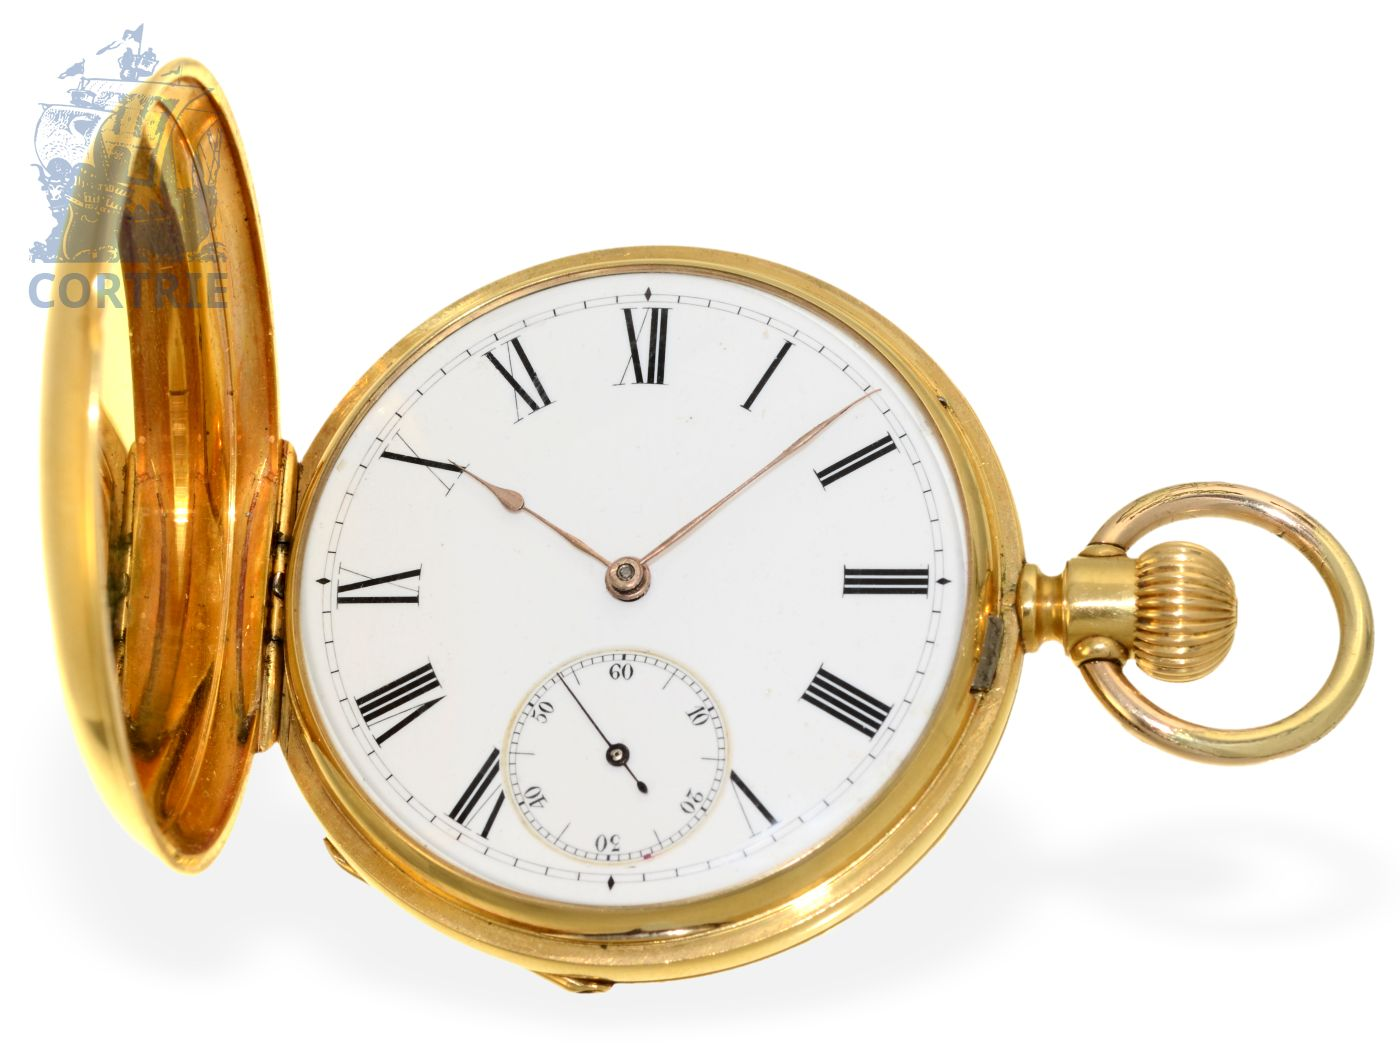 The pocket watch: early Patek Philippe Ankerchronometer No.57706, Geneva 1881-